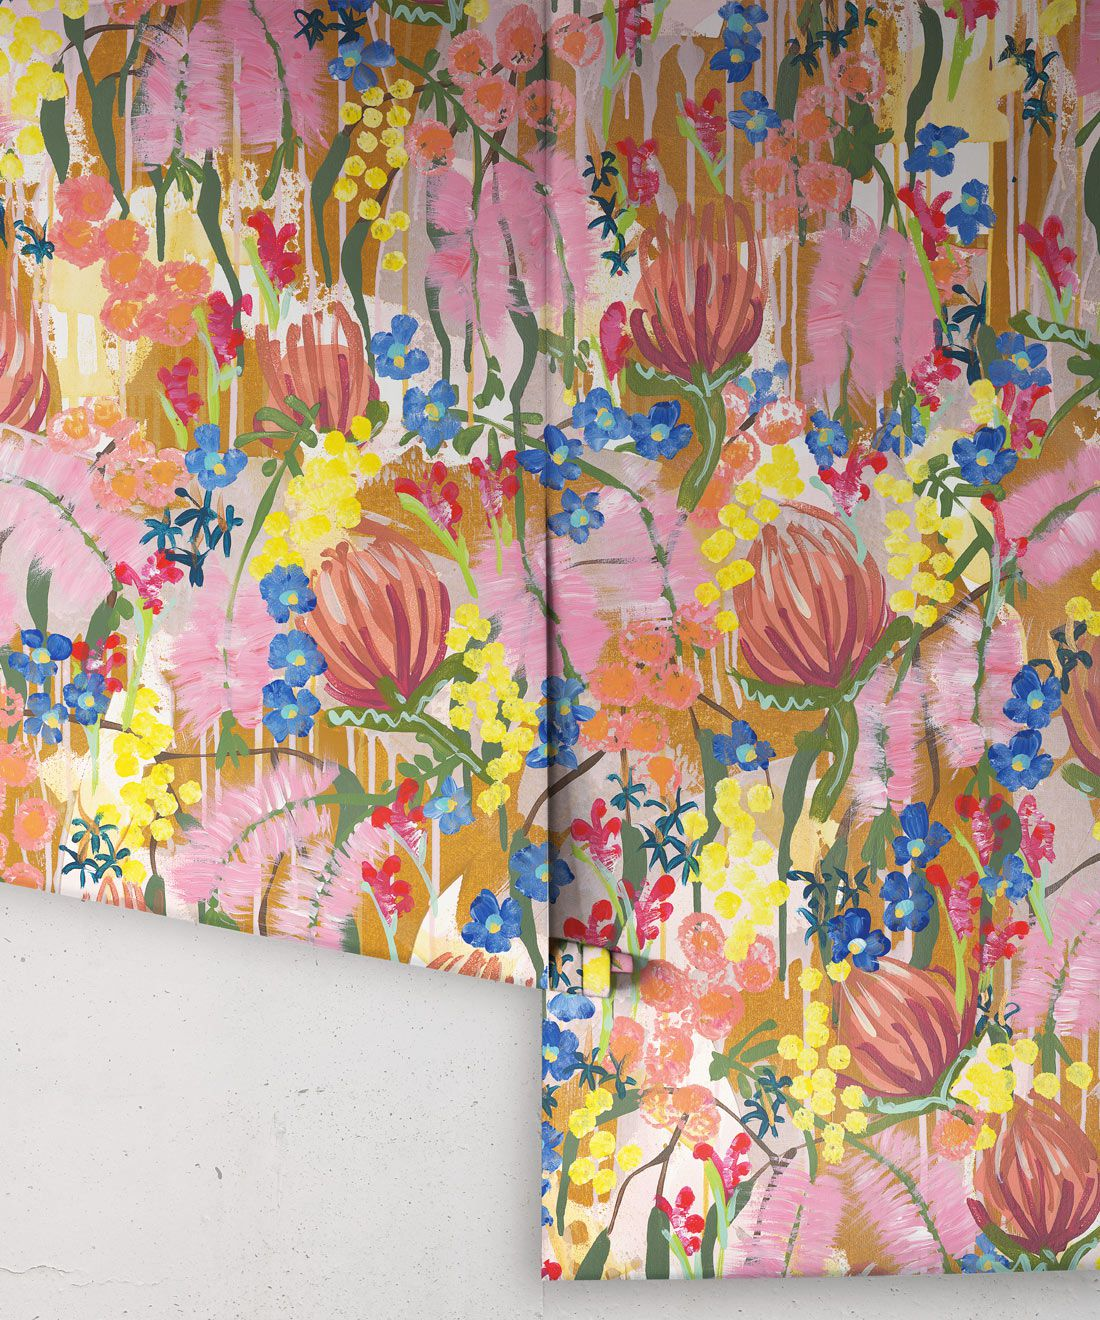 Acacia Wallpaper • Colourful Floral Wallpaper • Tiff Manuell • Abstract Expressionist Wallpaper • Rolls